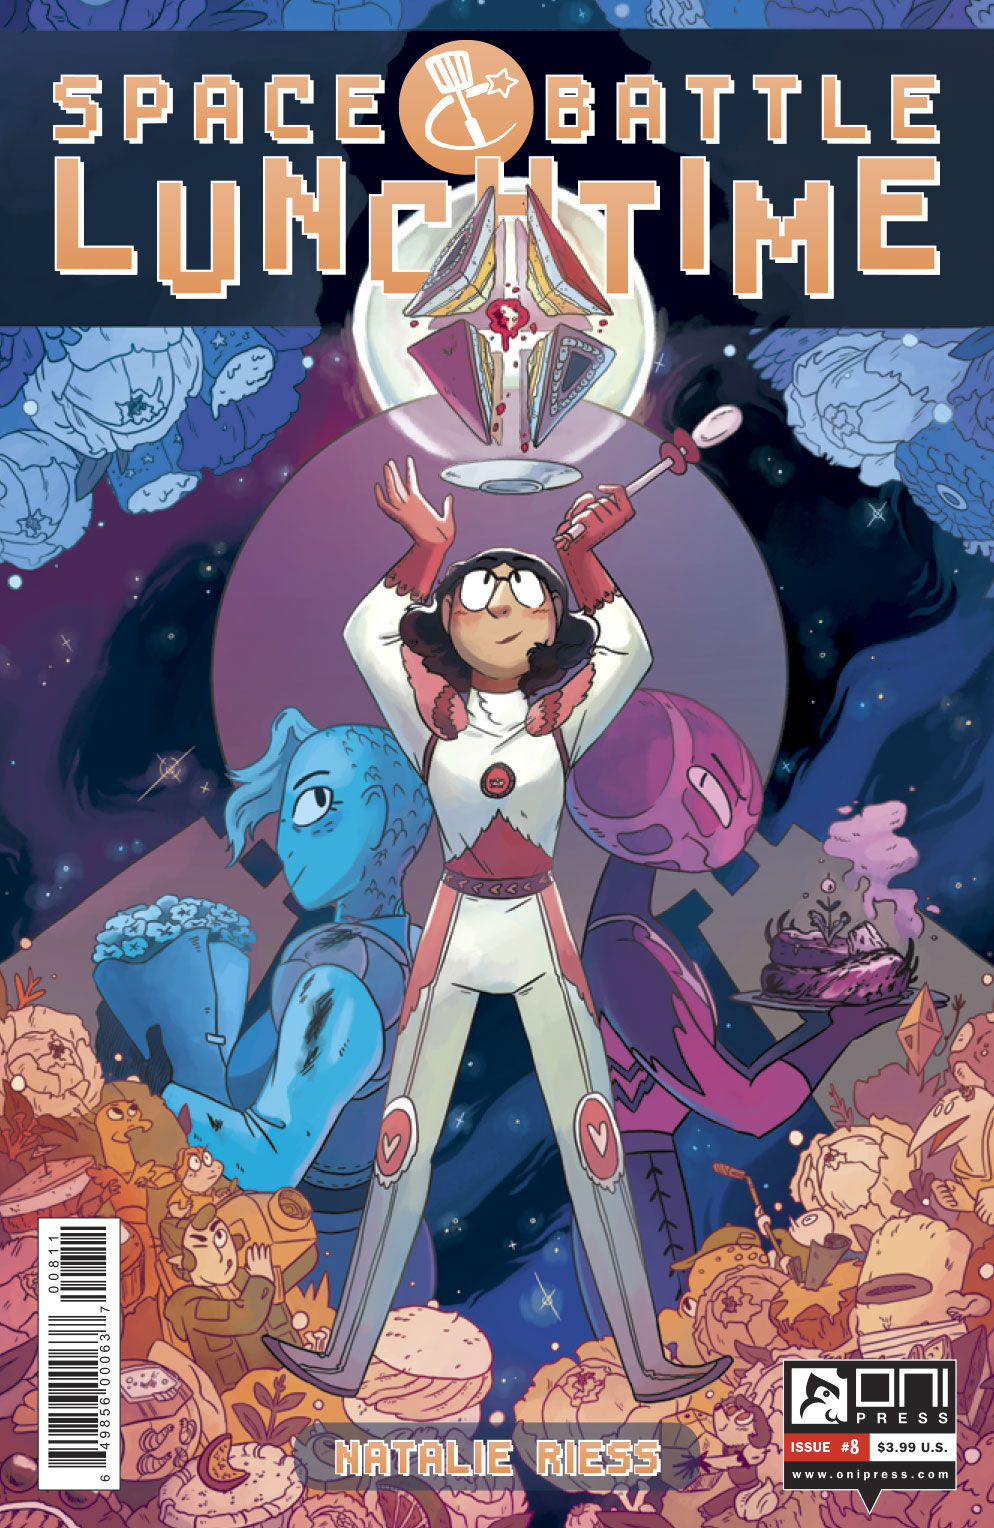 Space Battle Lunchtime #8 Review